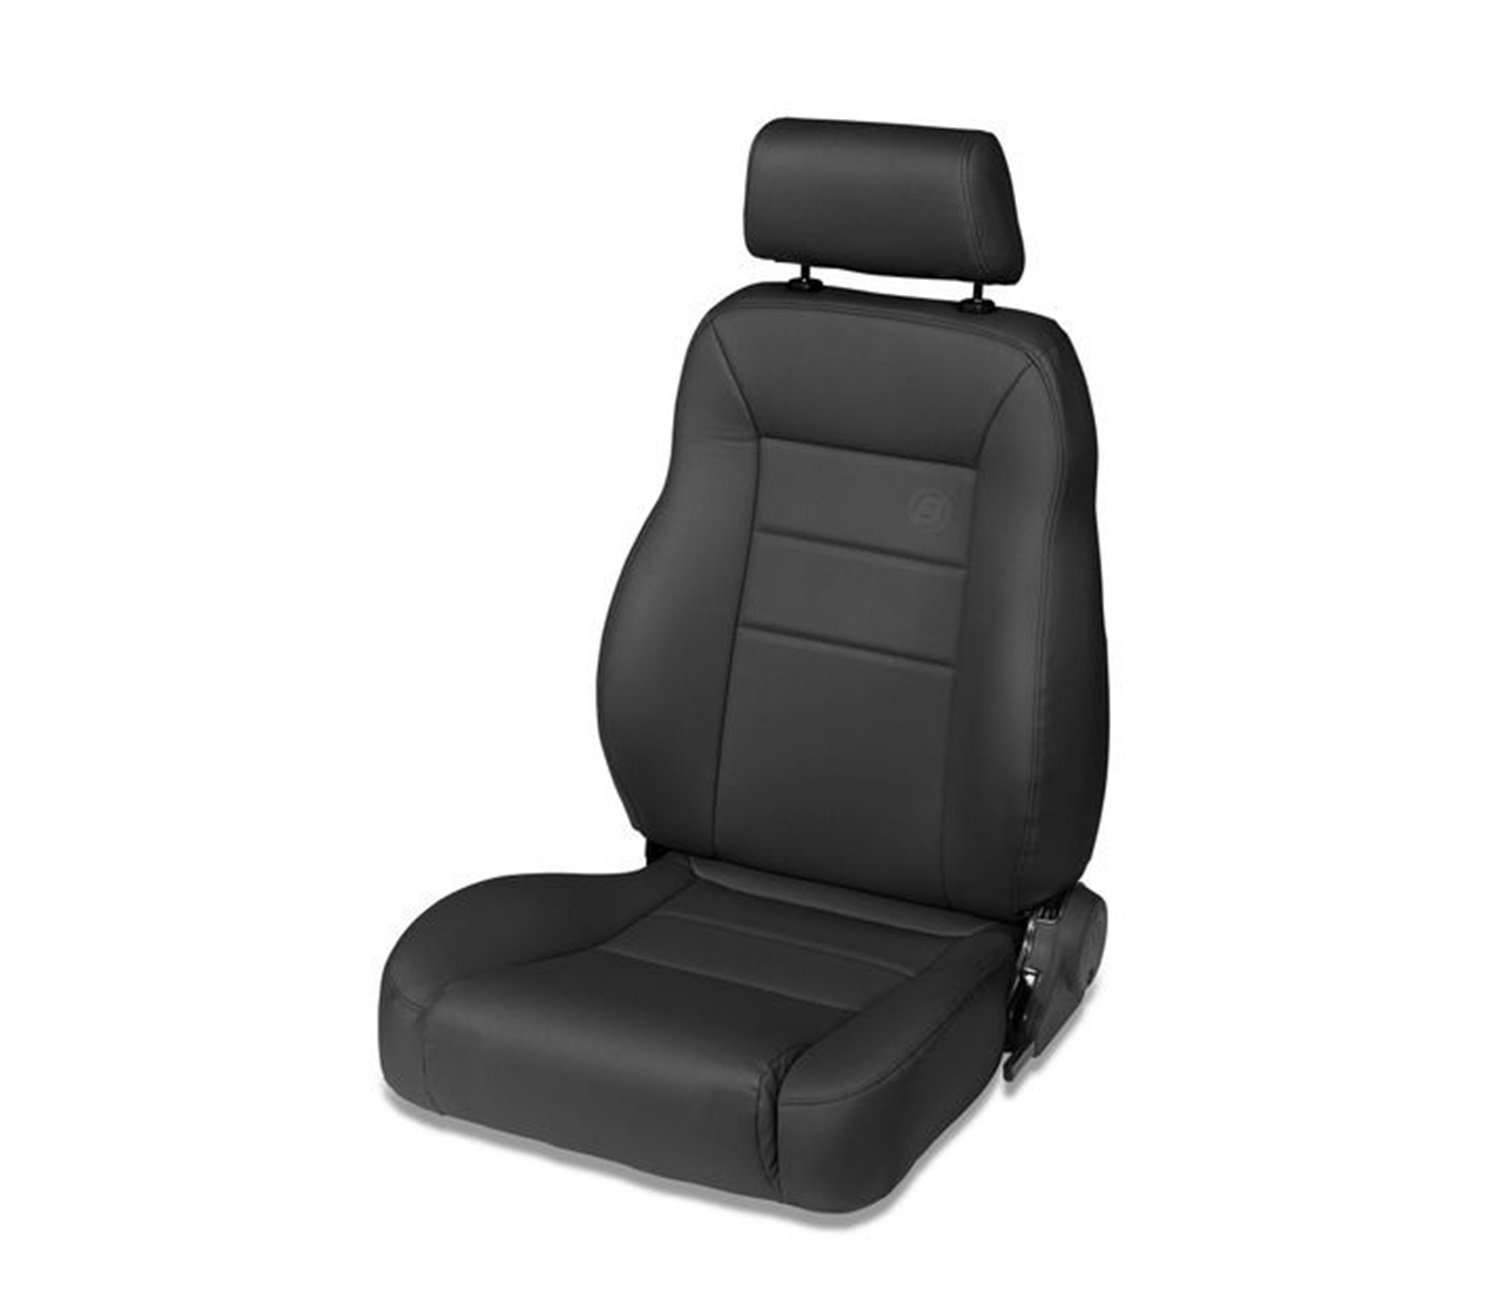 Bestop 39451-37 TrailMax II Pro Spice All-Vinyl Front High Back Driver-Side Jeep Seat for 1976-2006 Jeep CJ and Wrangler